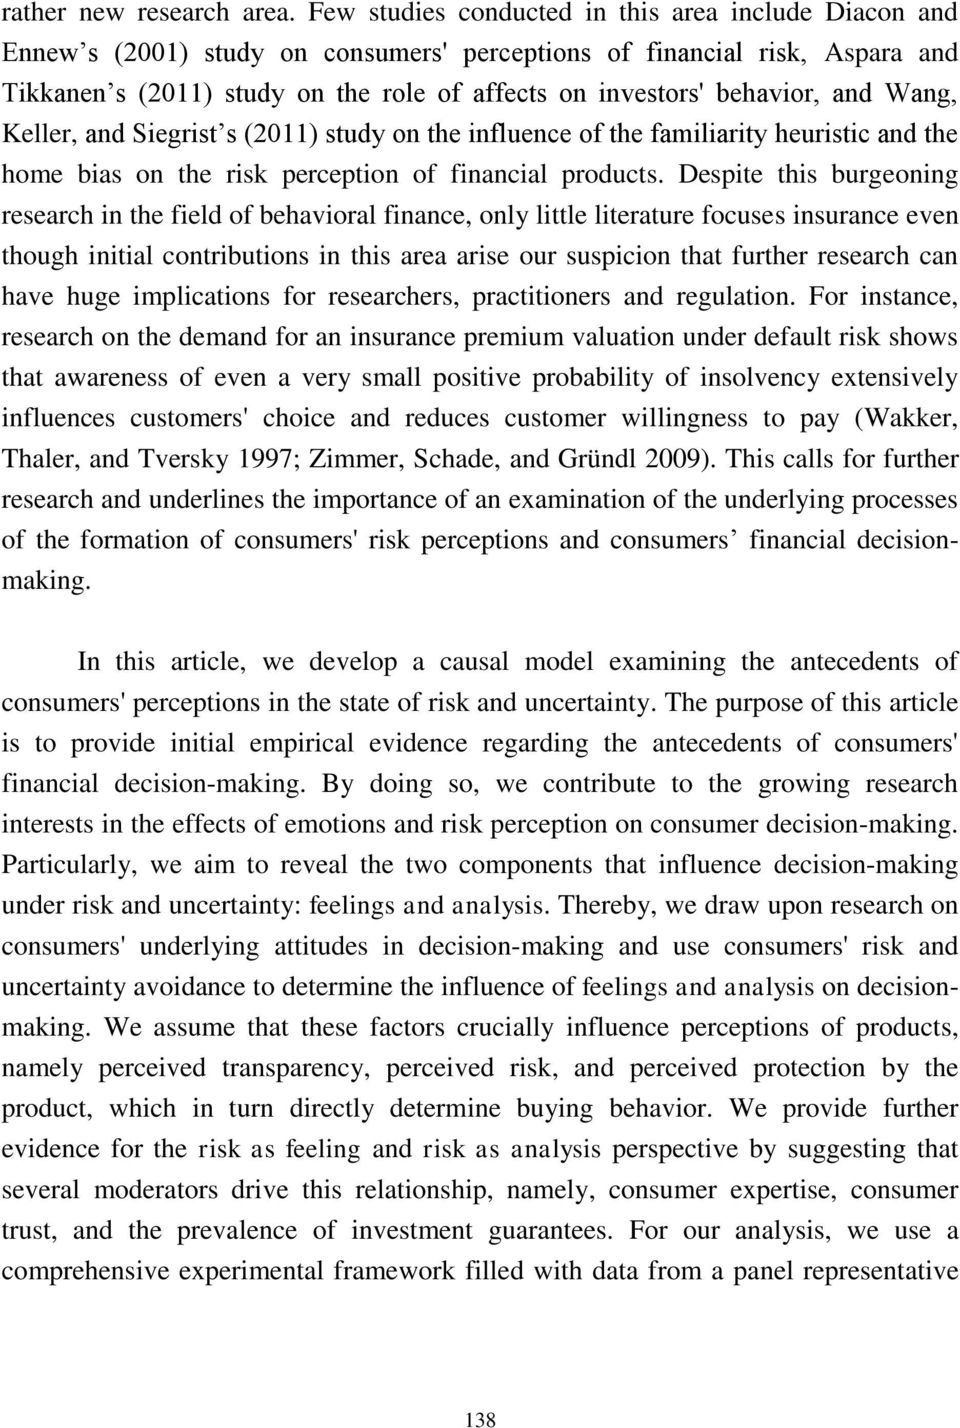 behavior, and Wang, Keller, and Siegrist s (2011) study on the influence of the familiarity heuristic and the home bias on the risk perception of financial products.